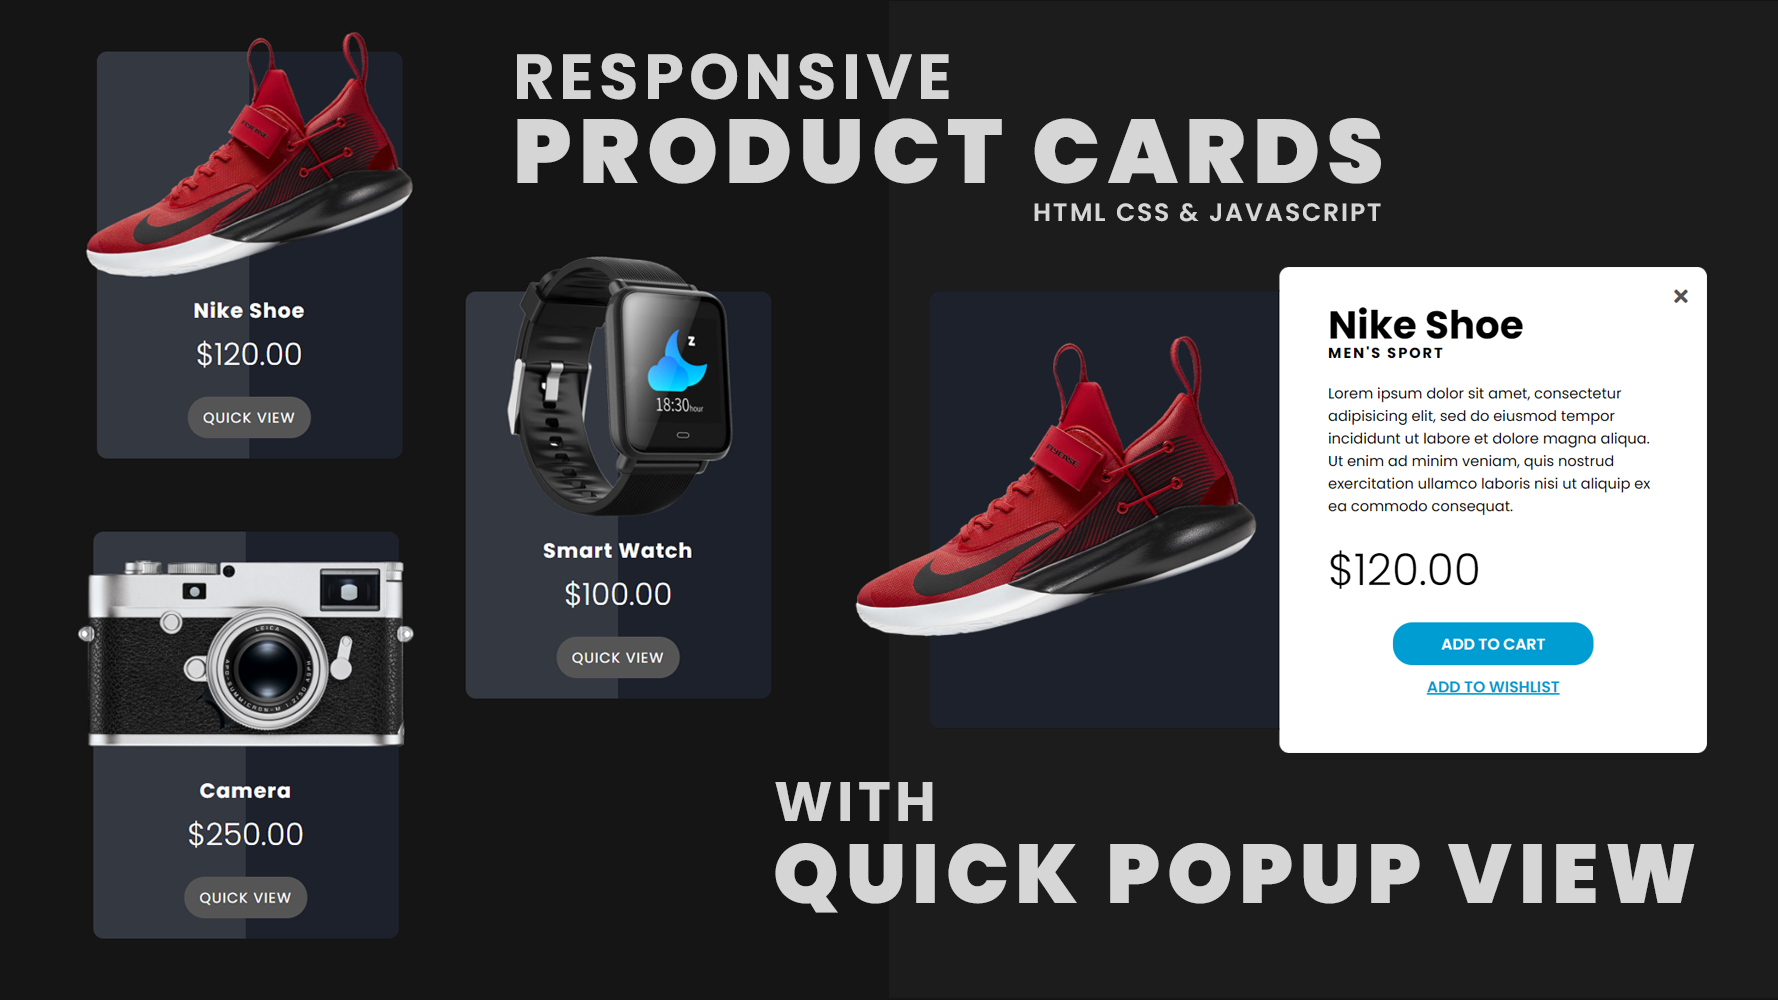 responsive product cards  with quick popup view  using